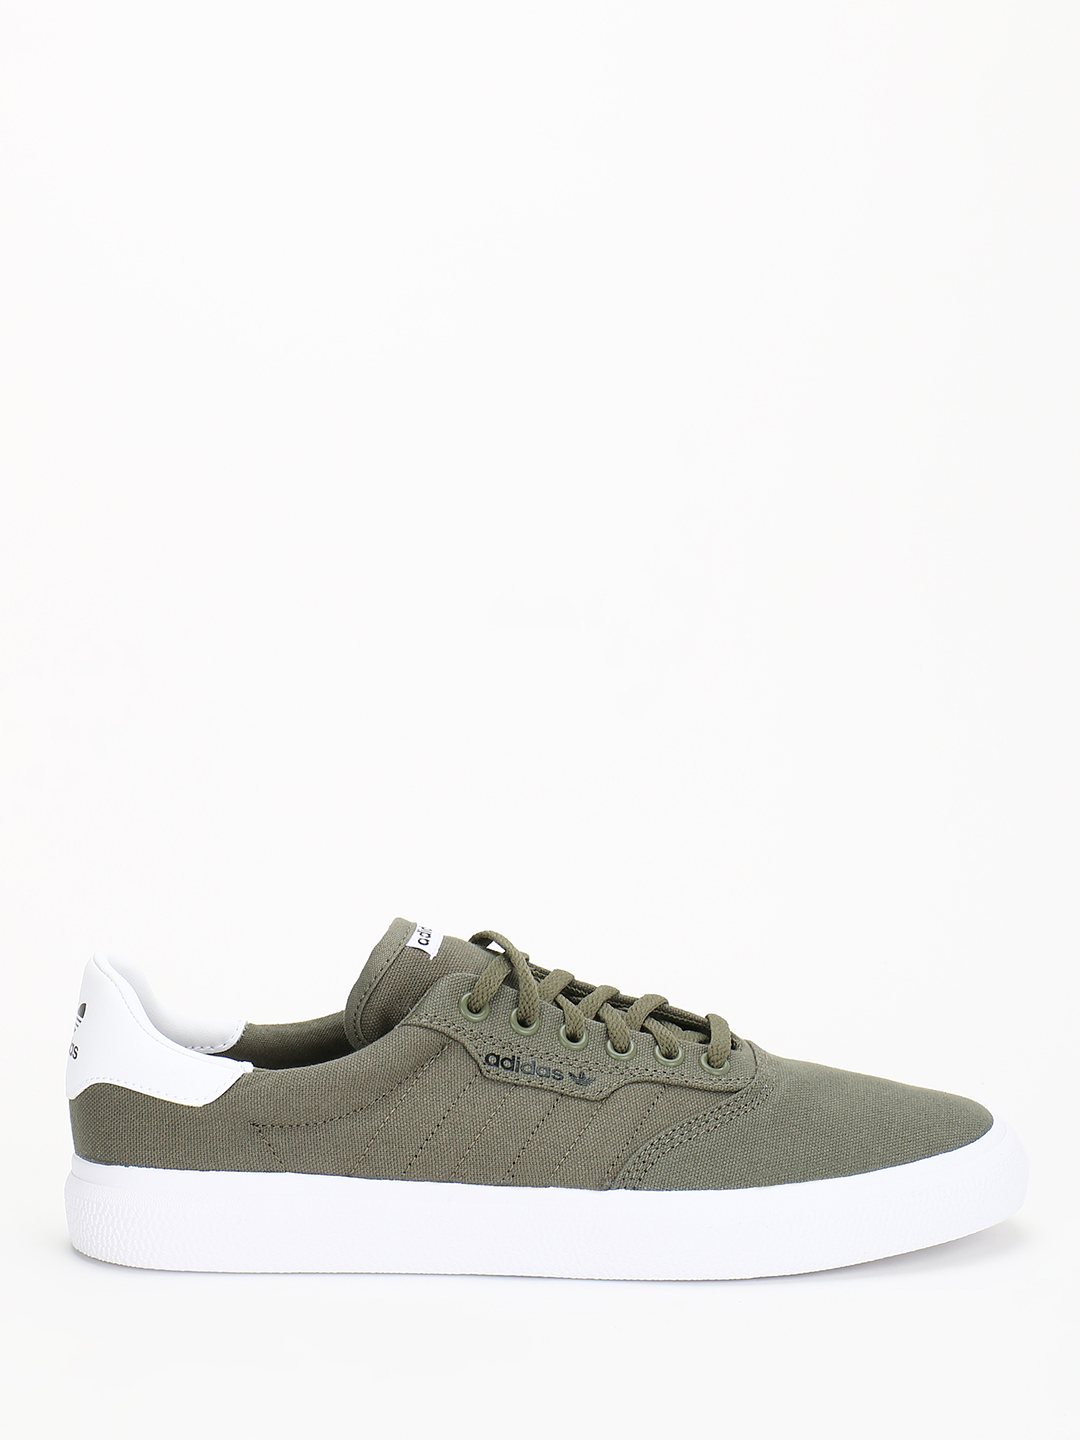 Buy Adidas Originals Green 3mc Vulc Shoes for Men Online in